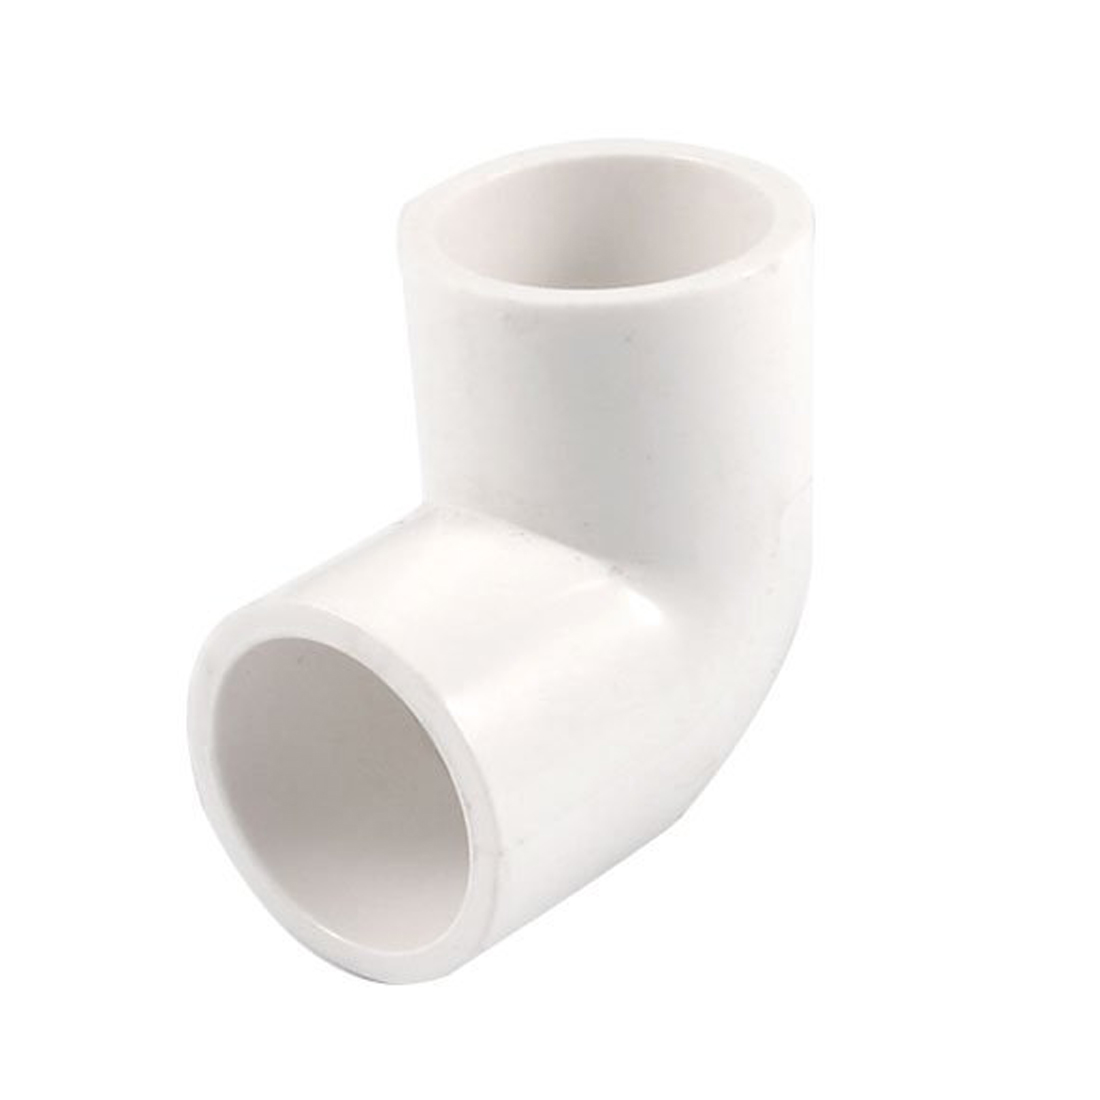 2 Sets/Lot 5 Pieces 20mm Dia 90 Angle Degree Elbow PVC Pipe Adapter White 3d ручка magicpen rp800a purple 3dln0287